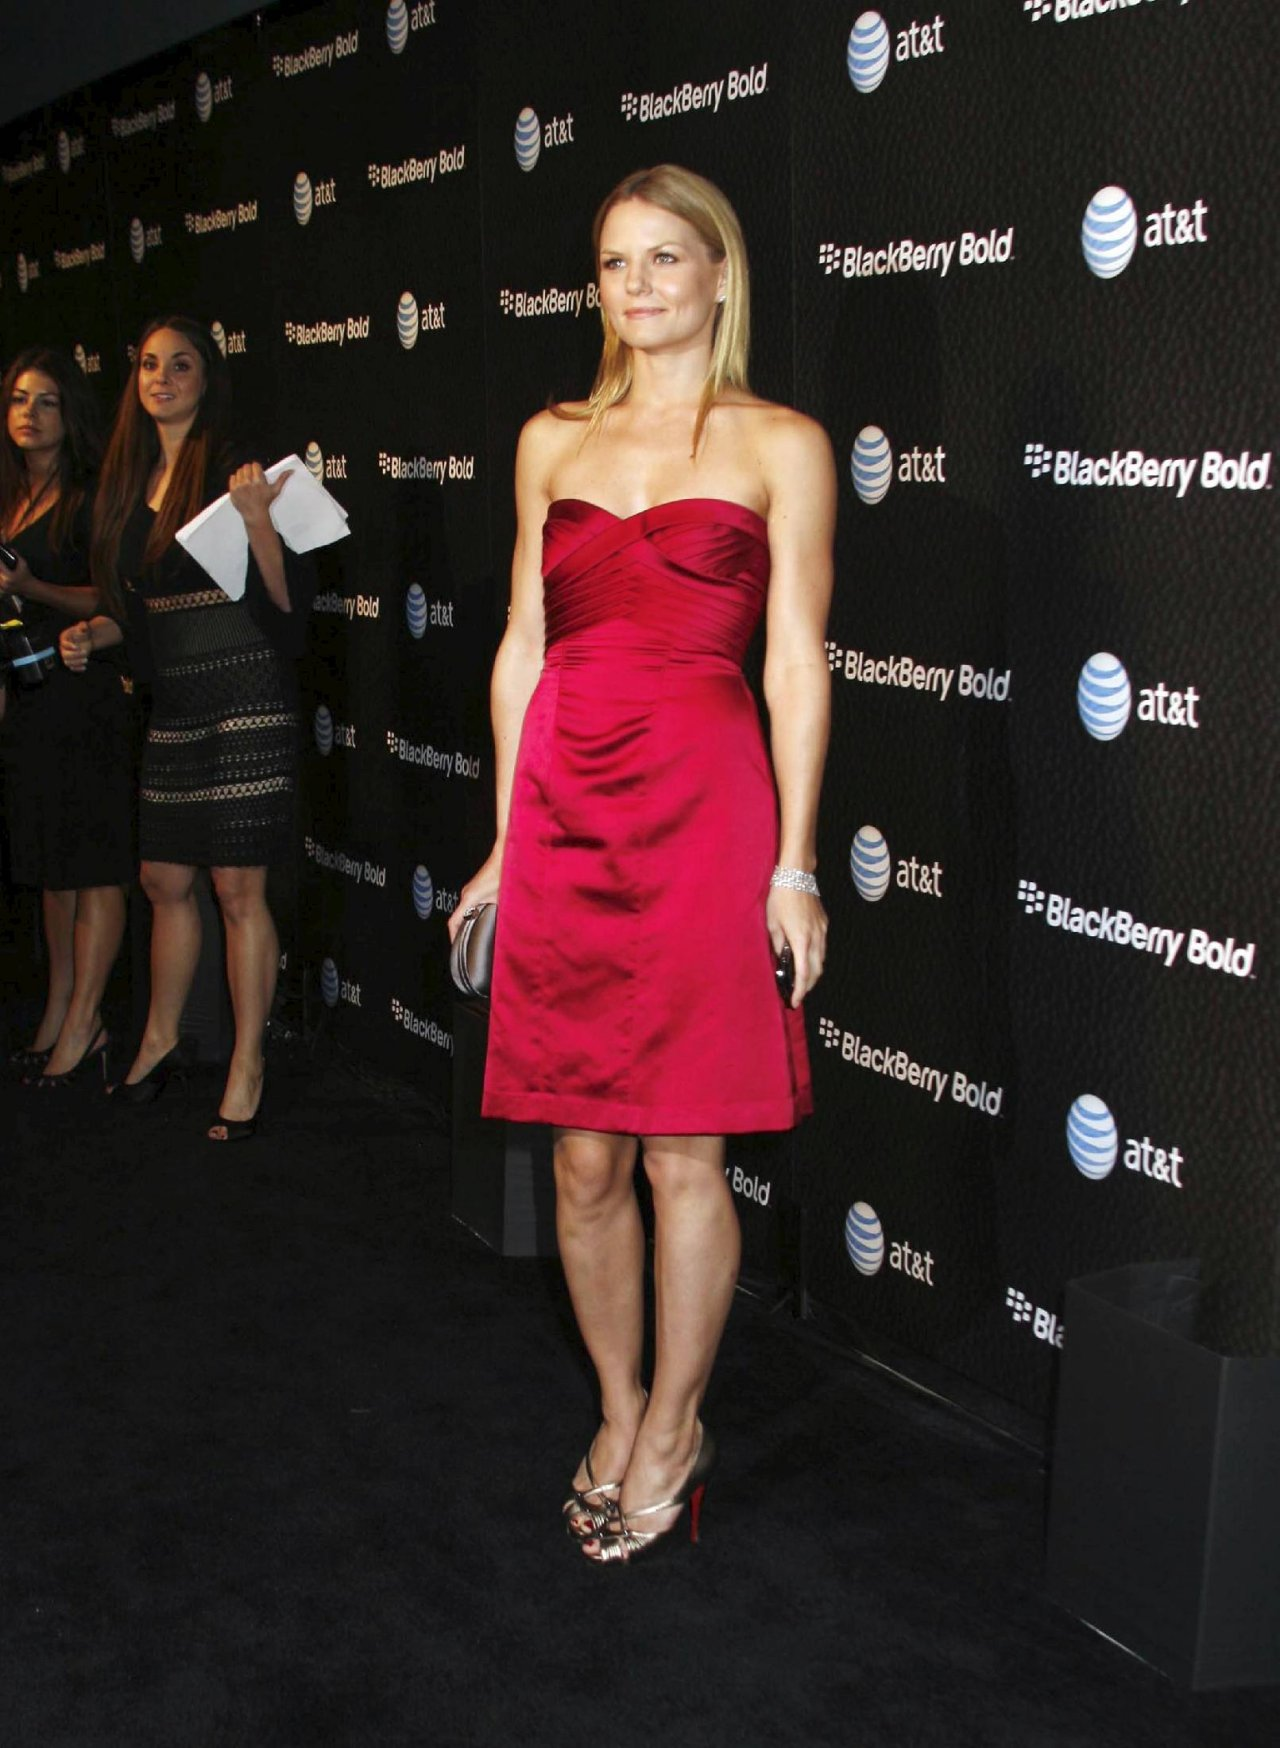 Photo Jennifer Morrison - Wallpapers with a celebrity ...: http://ua-dreams.com/celebrity/jennifer-morrison/5ugp.html